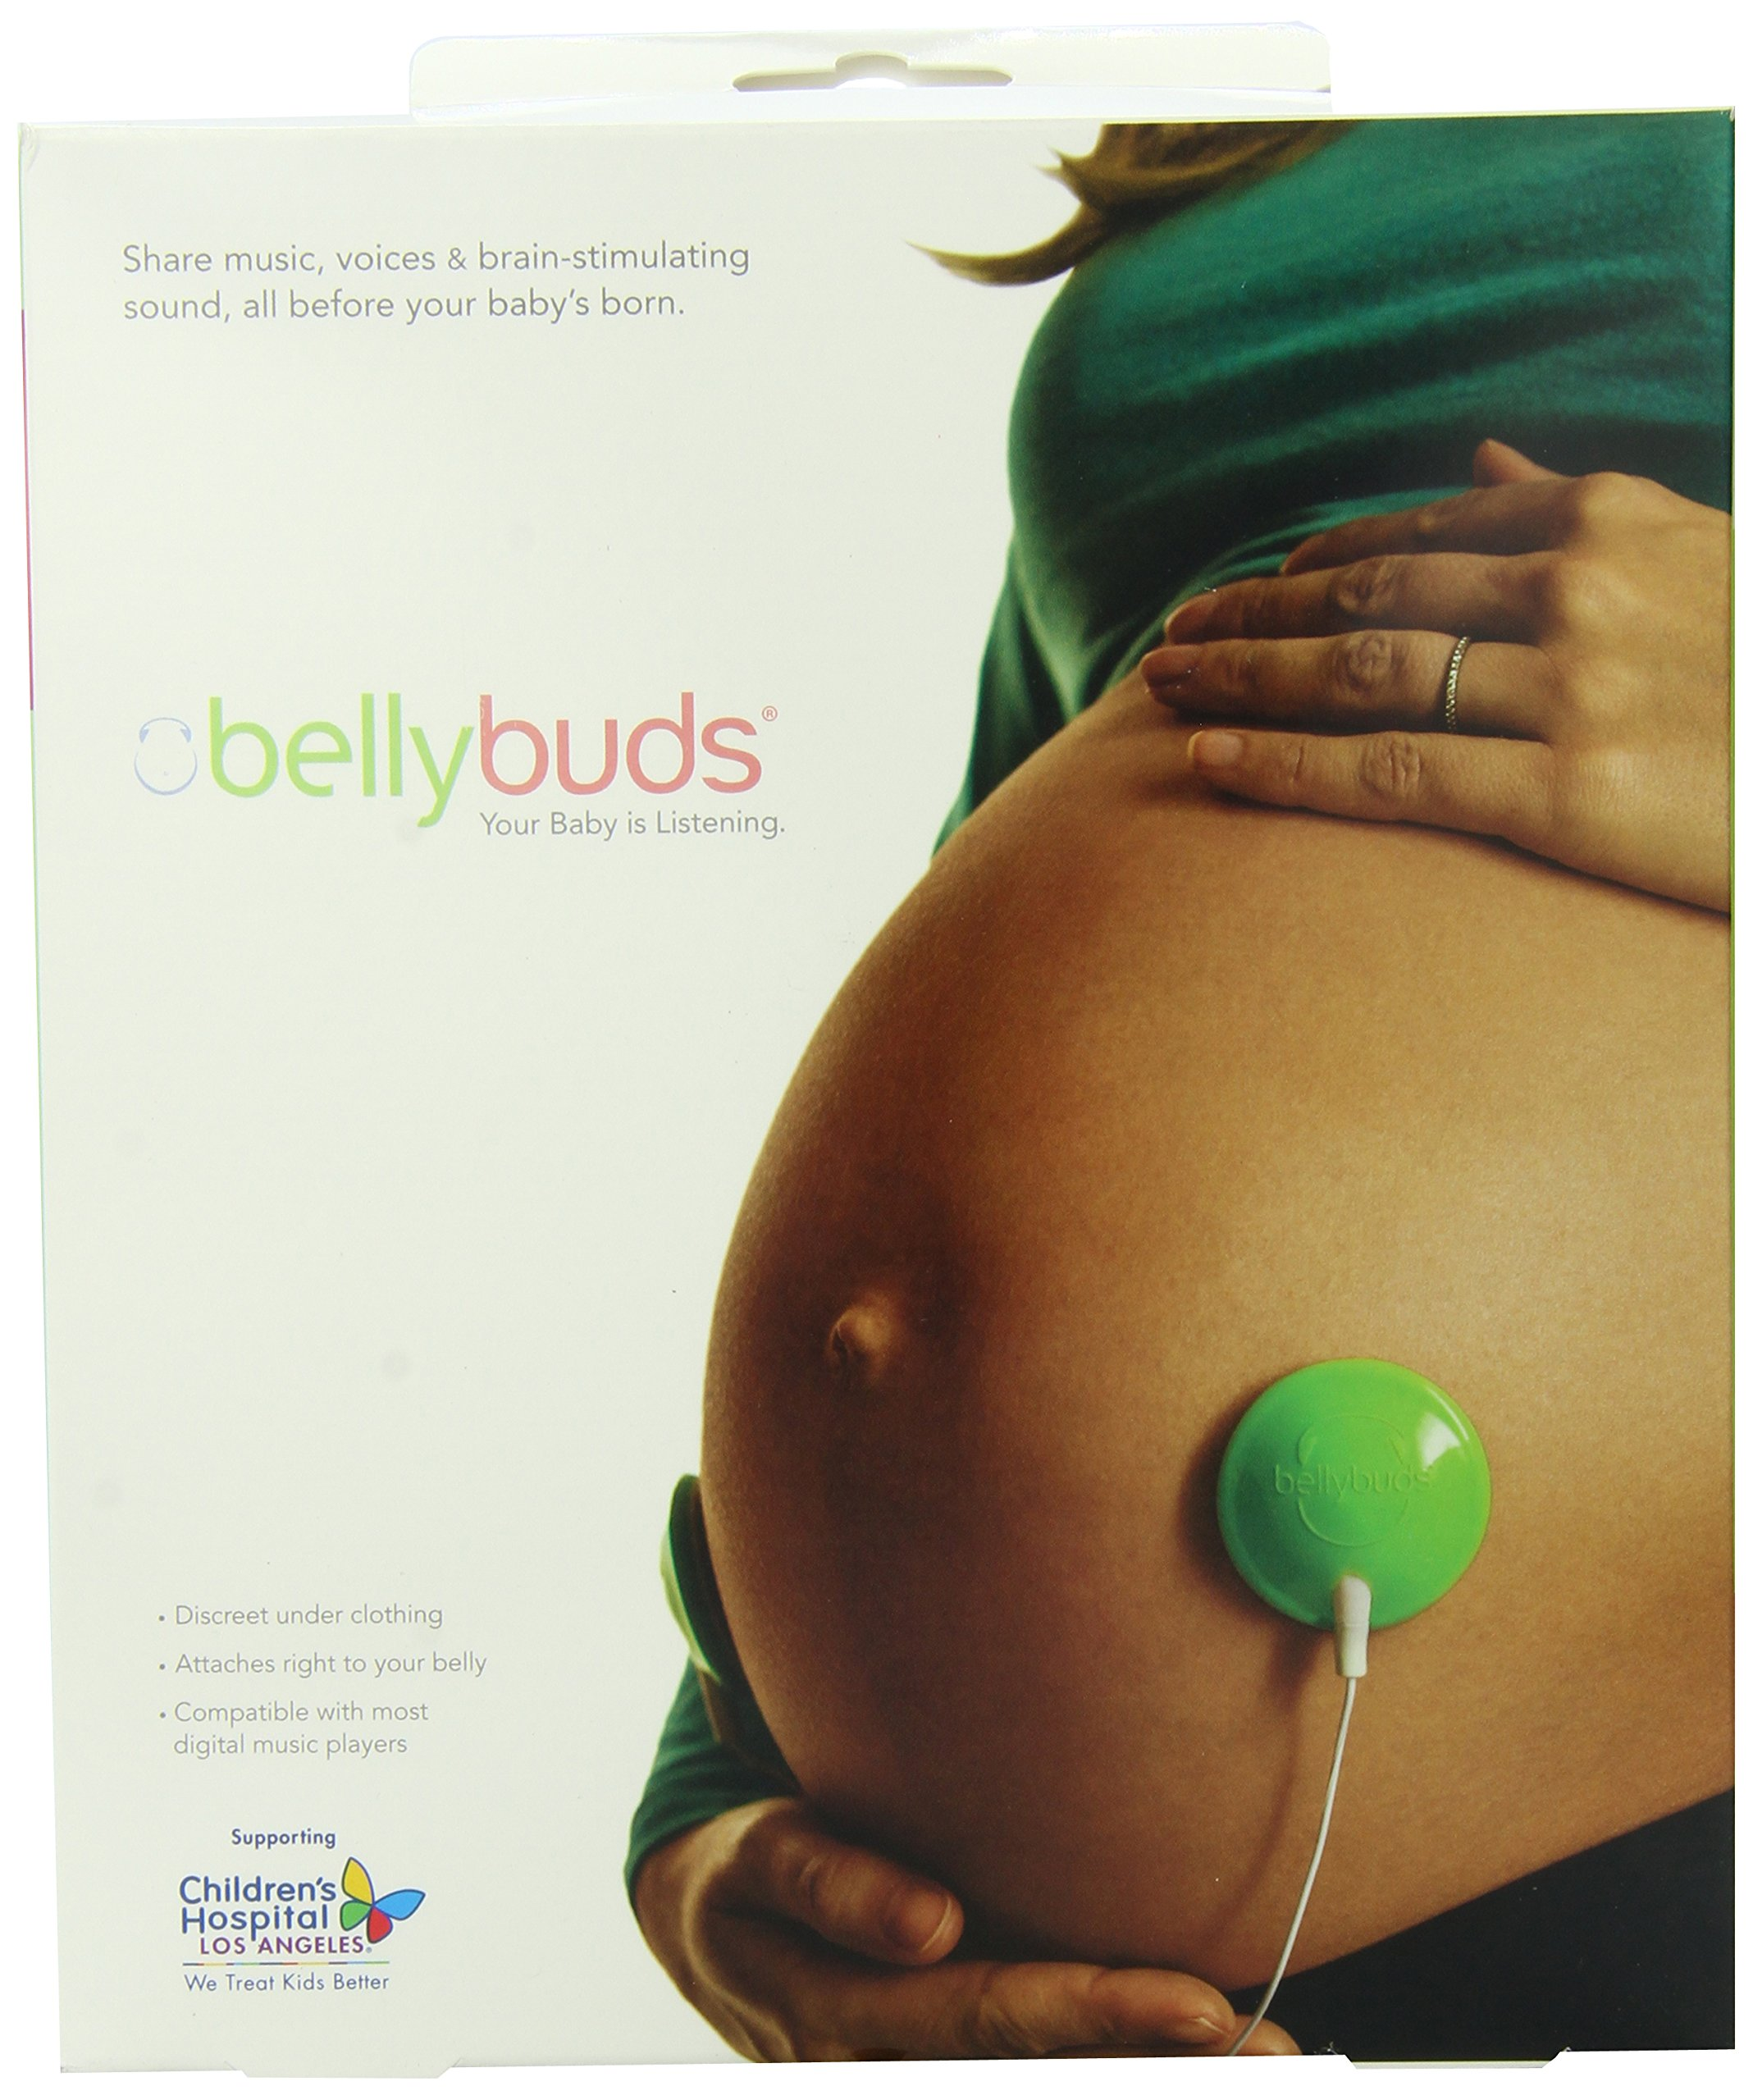 Bellybuds | Baby-Bump Sound System | 1st Generation | Prenatal Pregnant Headphones | Belly Phones That Plays Music And Voices For The Brain Development Of Your Unborn Baby | The Perfect Pregnancy Gift by Bellybuds (Image #1)